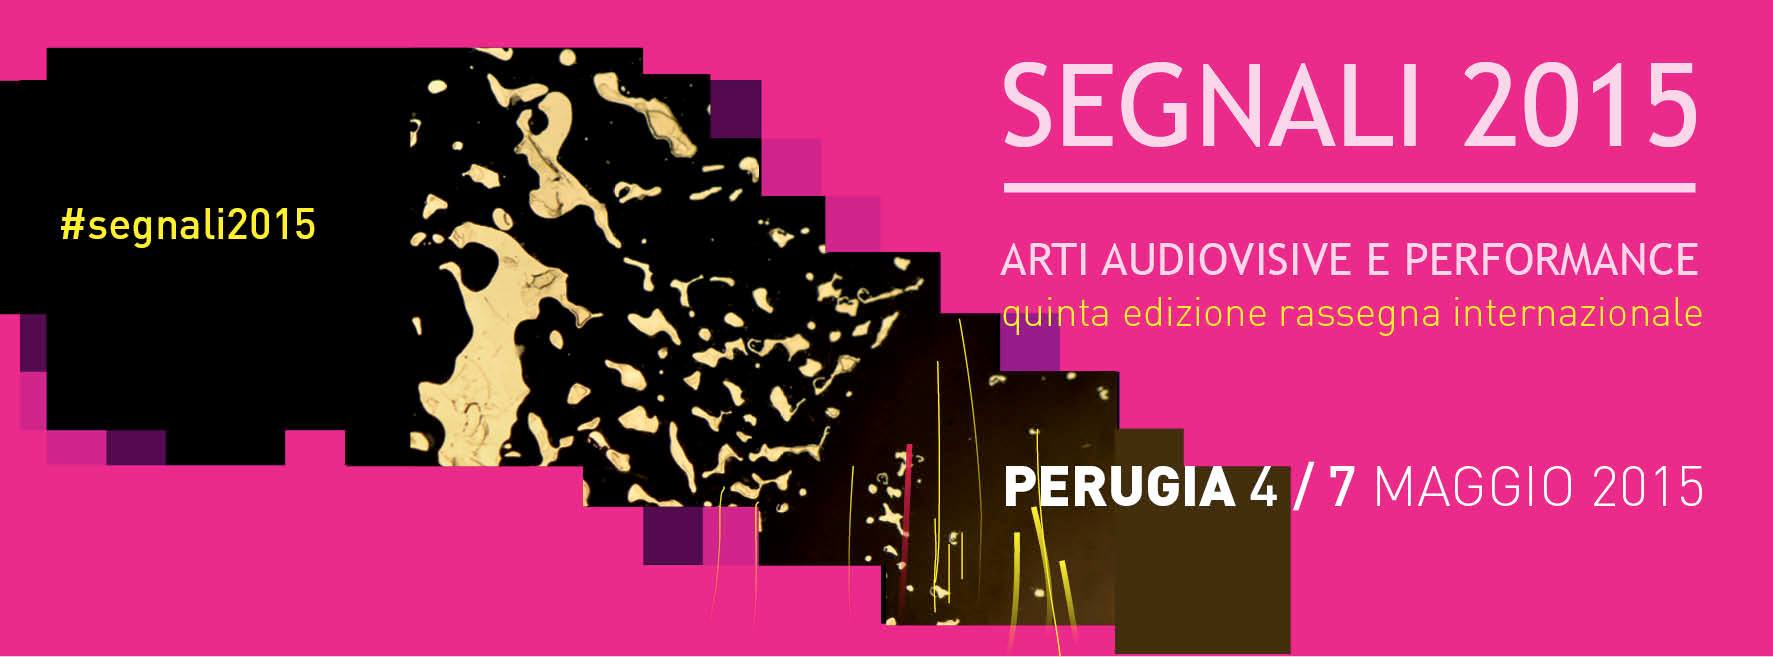 segnali 2015 Arti Audiovisive e performance